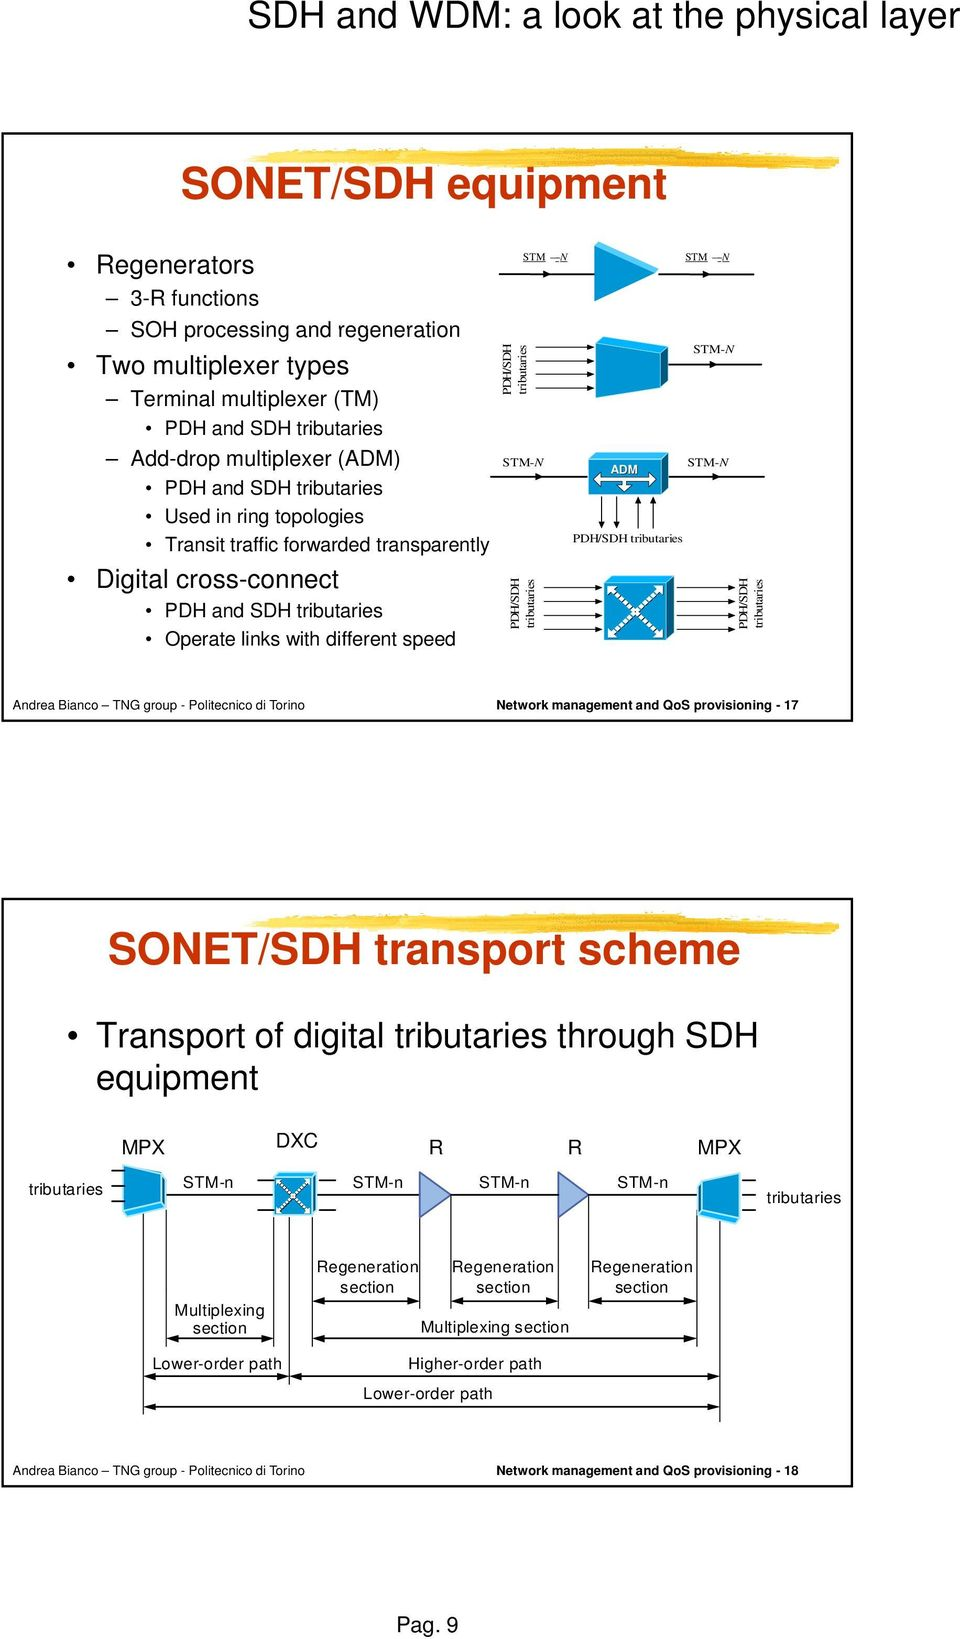 tributaries STM - N ADM PDH/SDH tributaries STM - N STM-N STM-N PDH/SDH tributaries Network management and QoS provisioning - 17 SONET/SDH transport scheme Transport of digital tributaries through